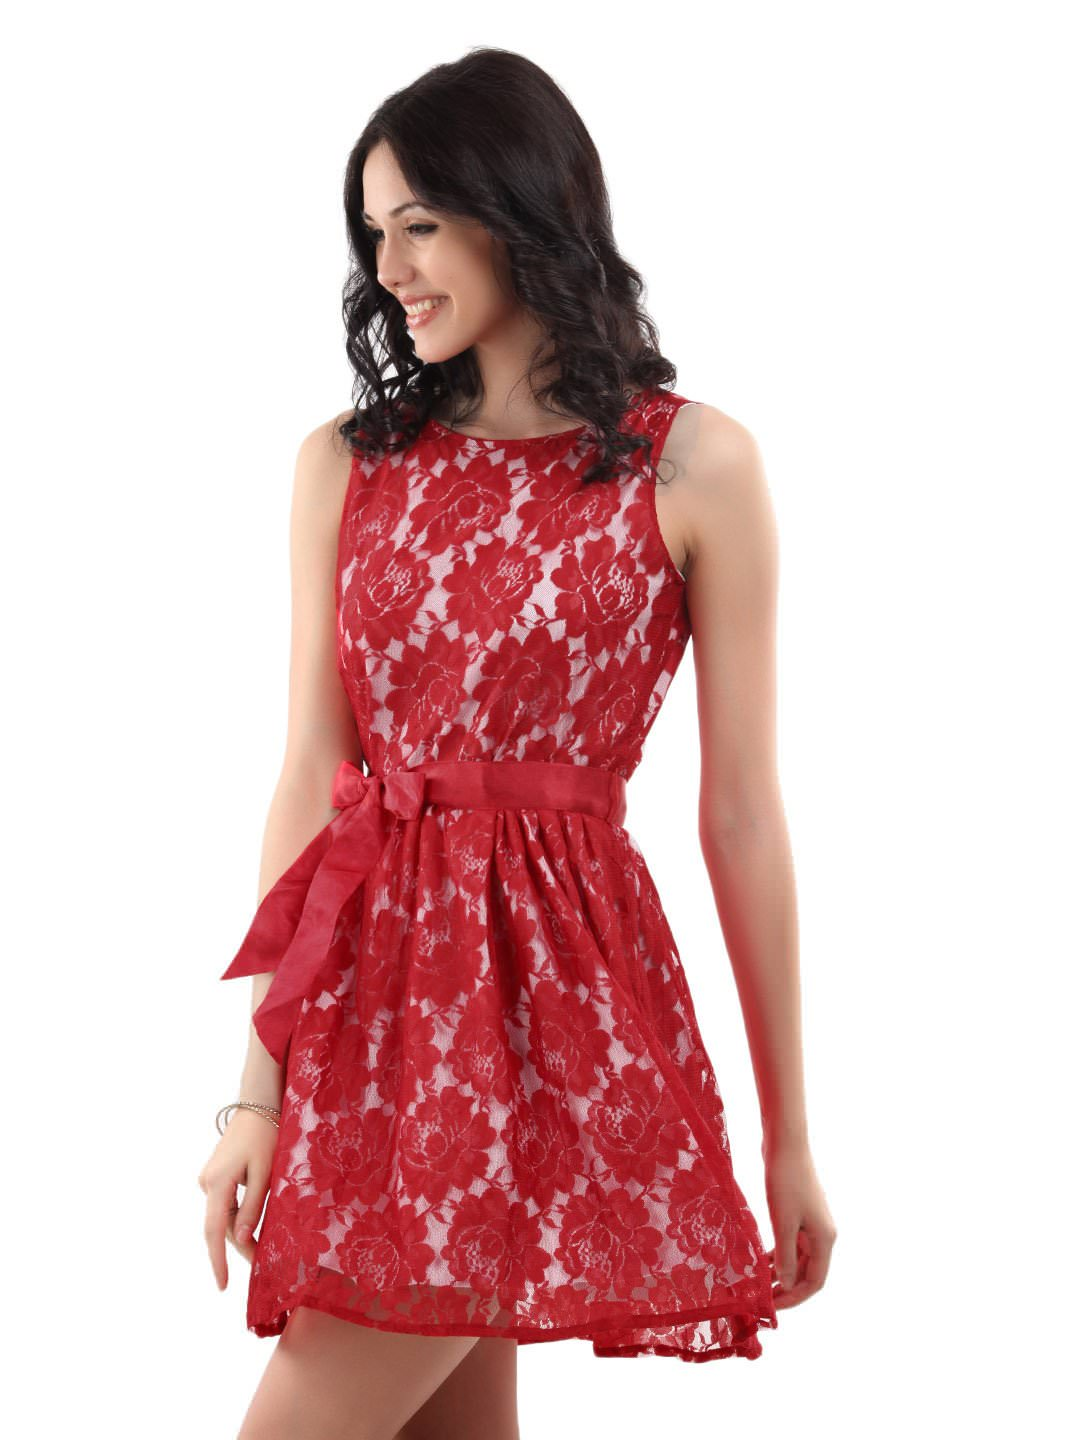 Red Lace Dress - A Lovely Women's Clothing For All Occasions